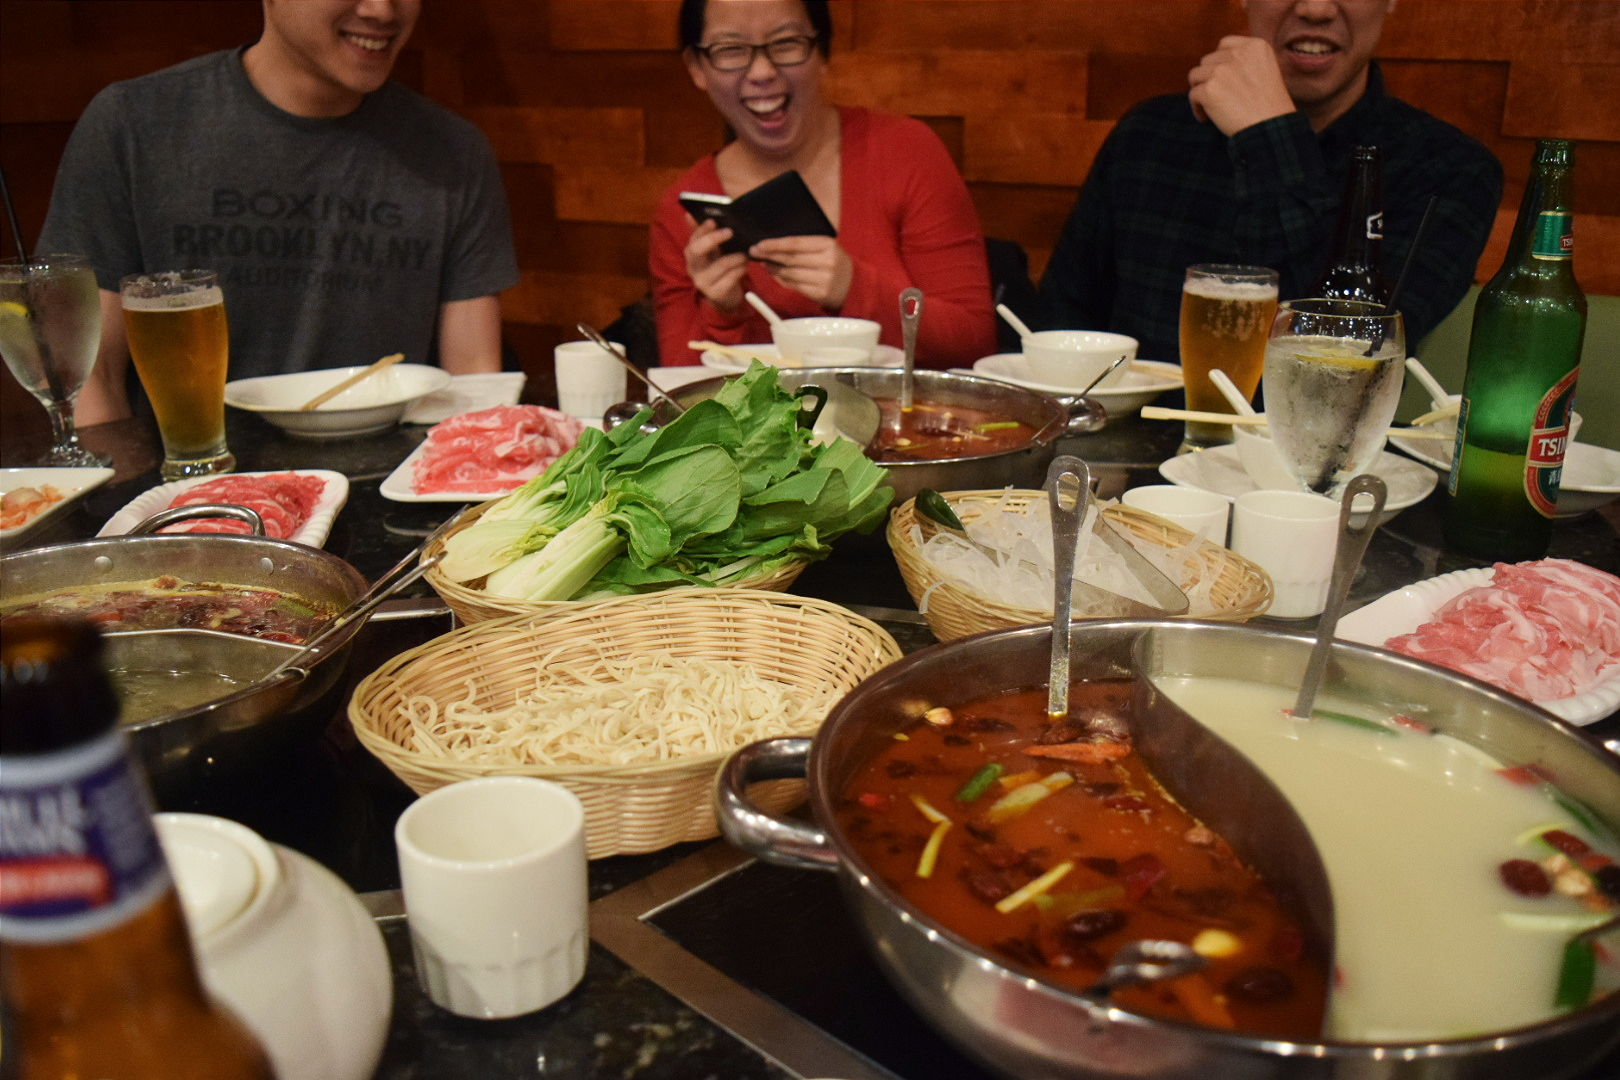 Michael, Maggie, and Danny sharing a laugh (probably at our bumbling chop stick skills)over all the delicious food they ordered. The fish balls and quail eggs were especially trick with sticks, but probably the hardest to scoop out were the noodles.  Photo by Holly T.